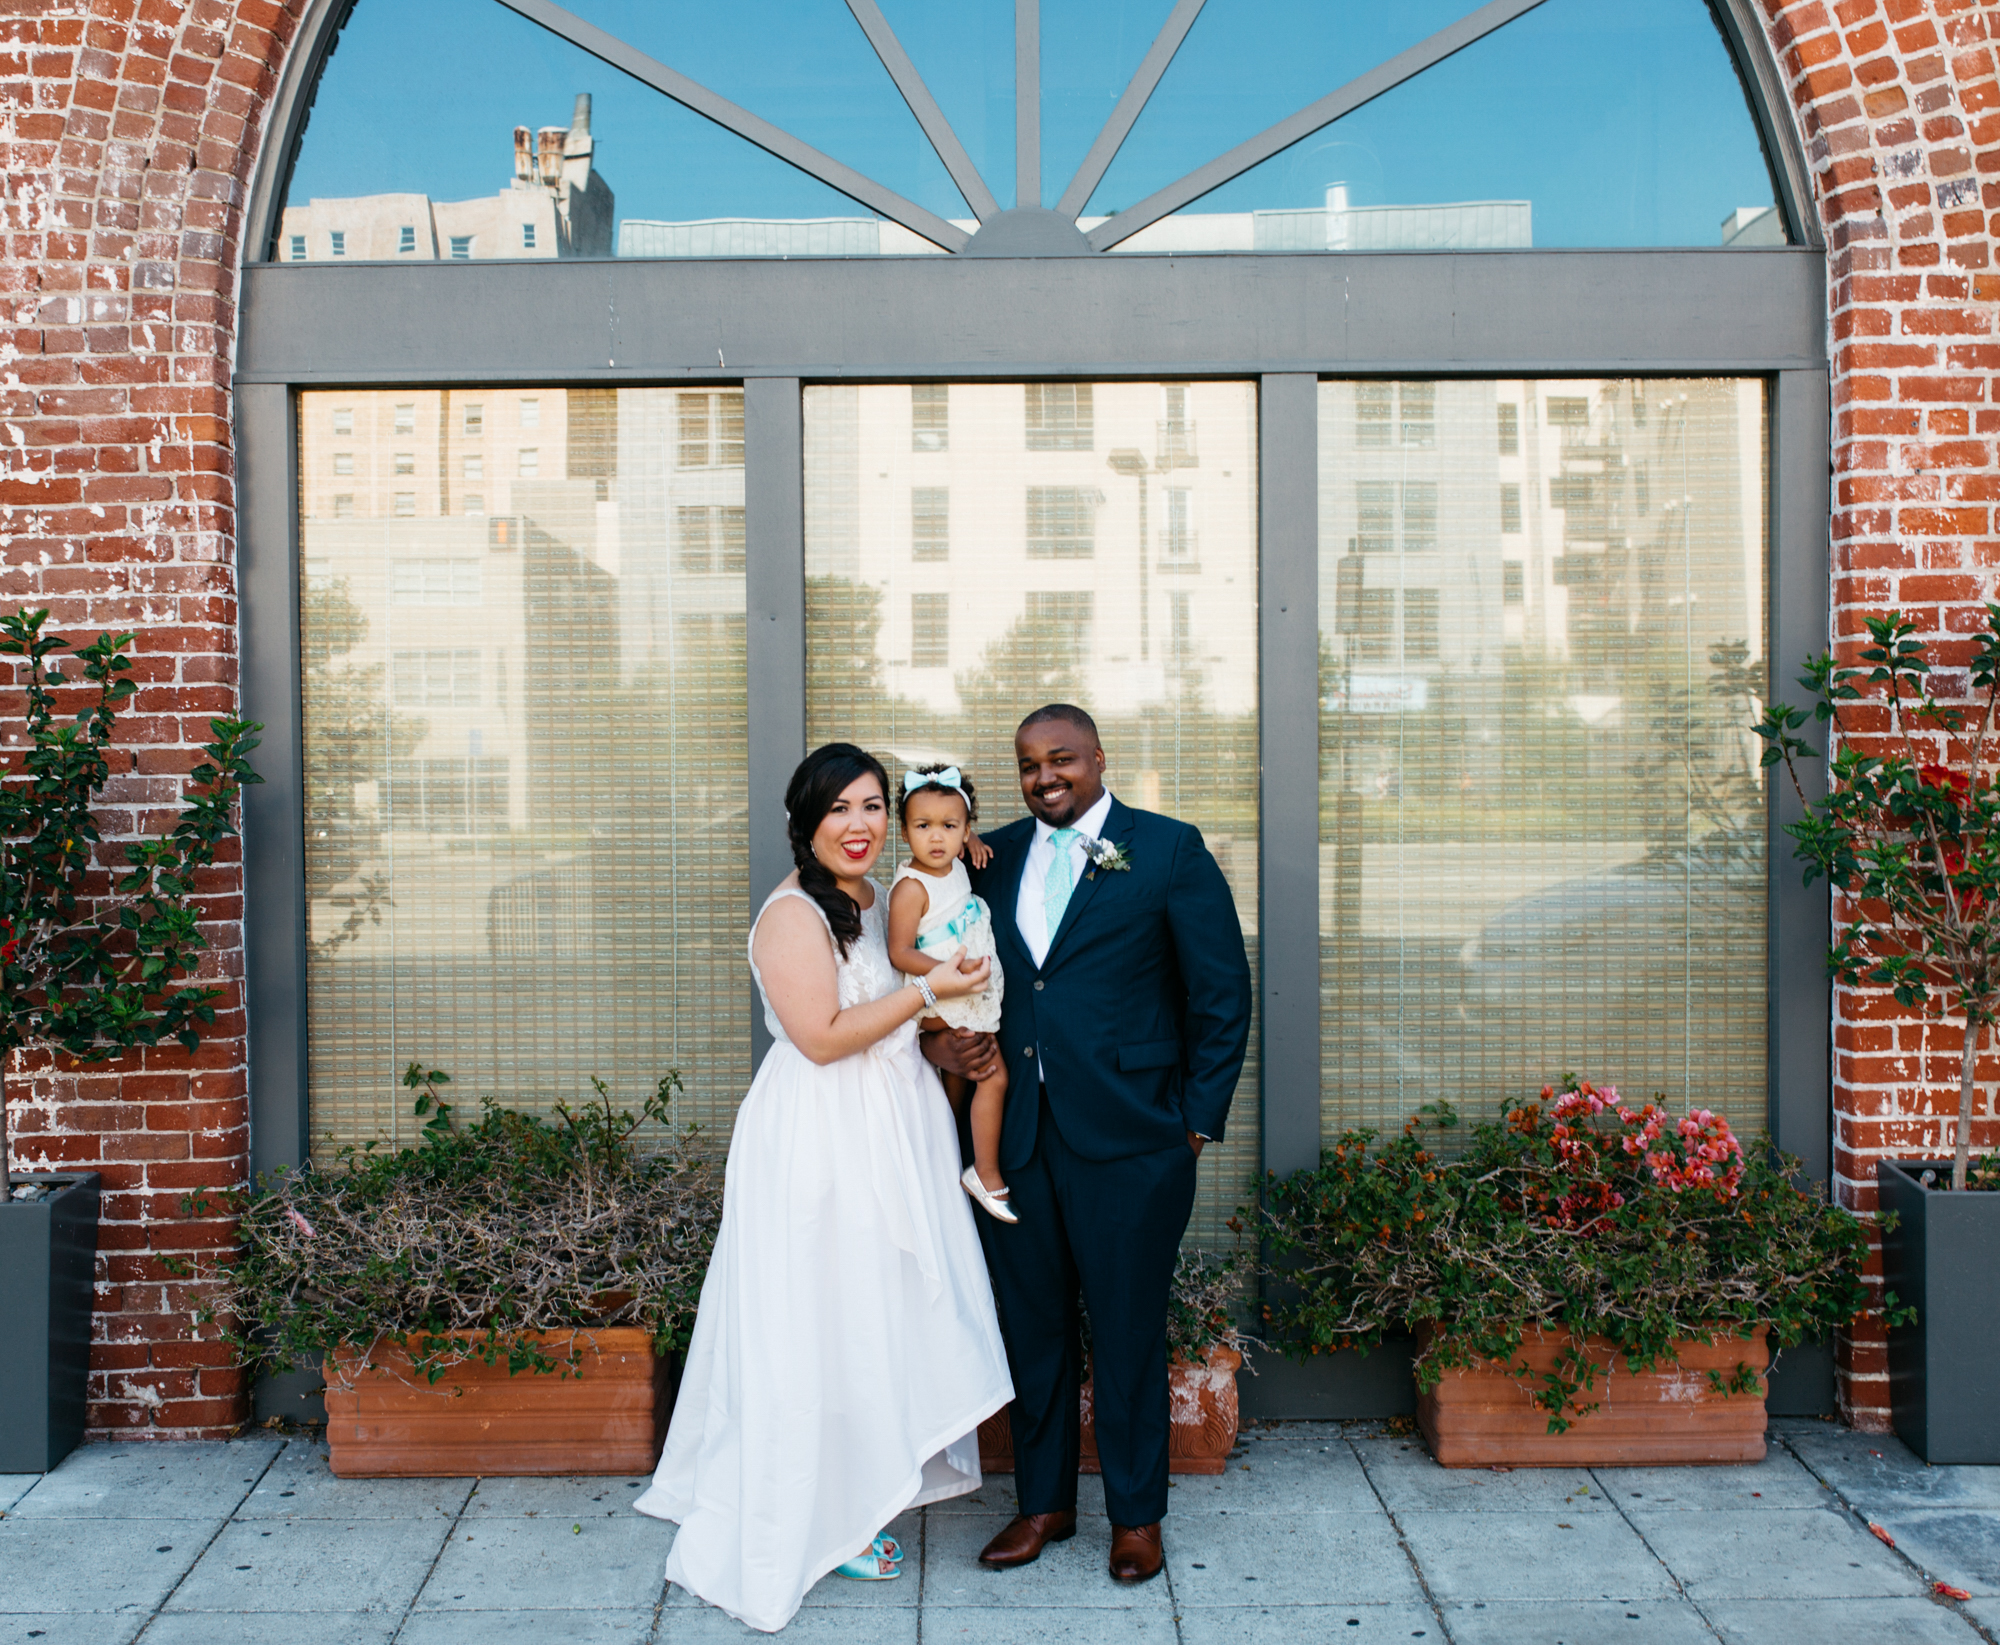 SamErica Studios - Los Angeles Wedding Photographer - The Loft on Pine-52.jpg